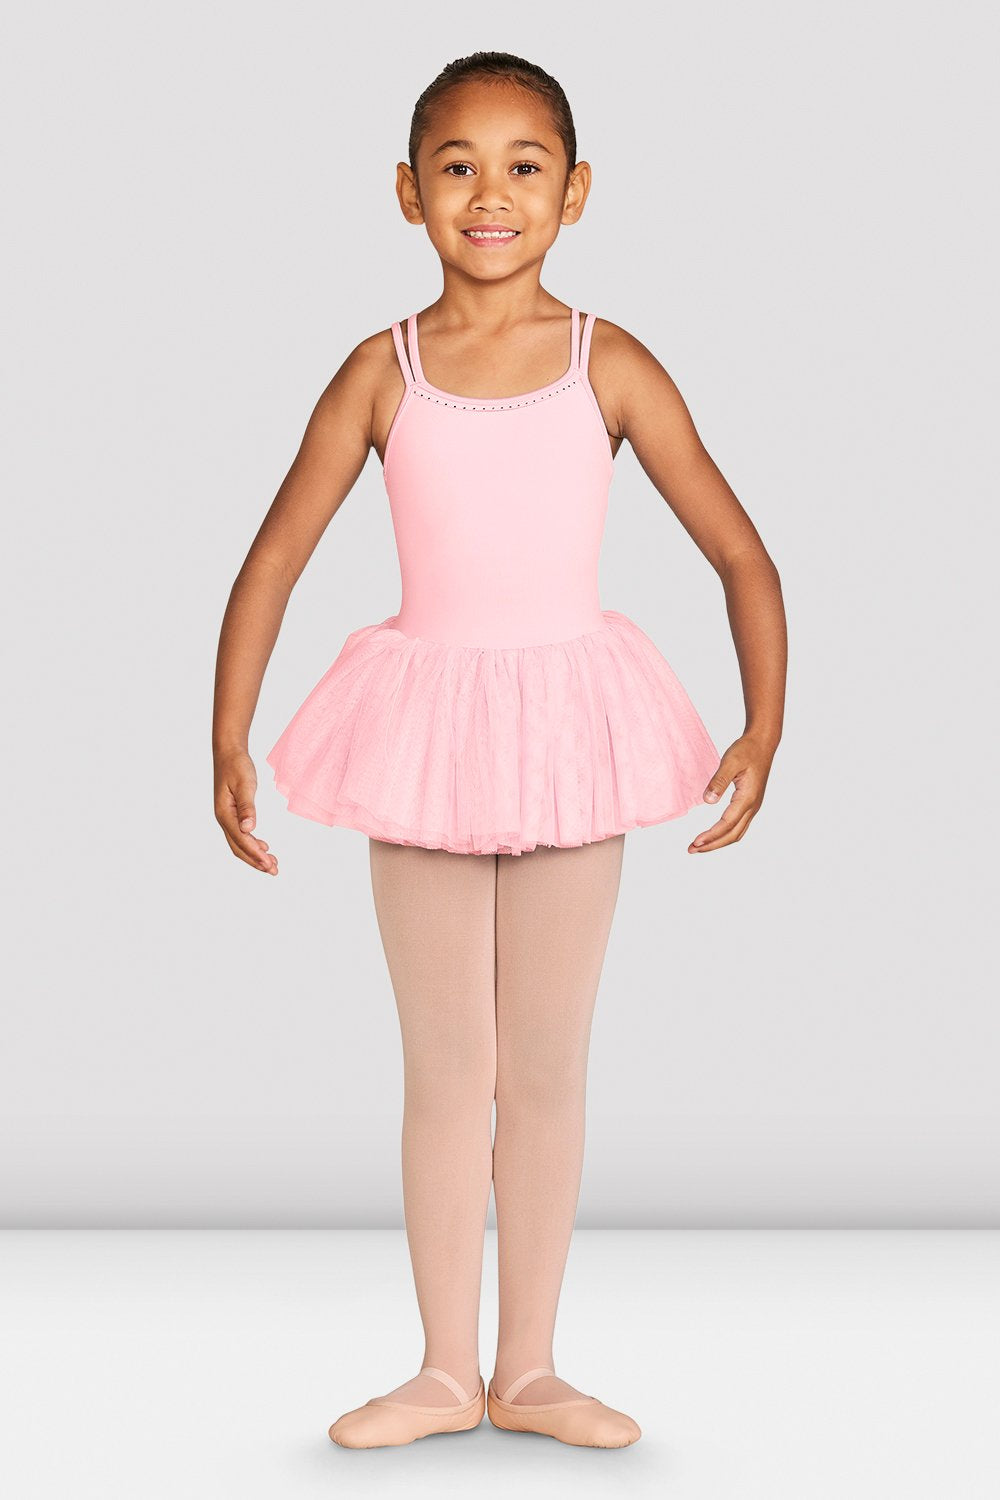 Girls Dottie Cross Back Tutu Dress - BLOCH US